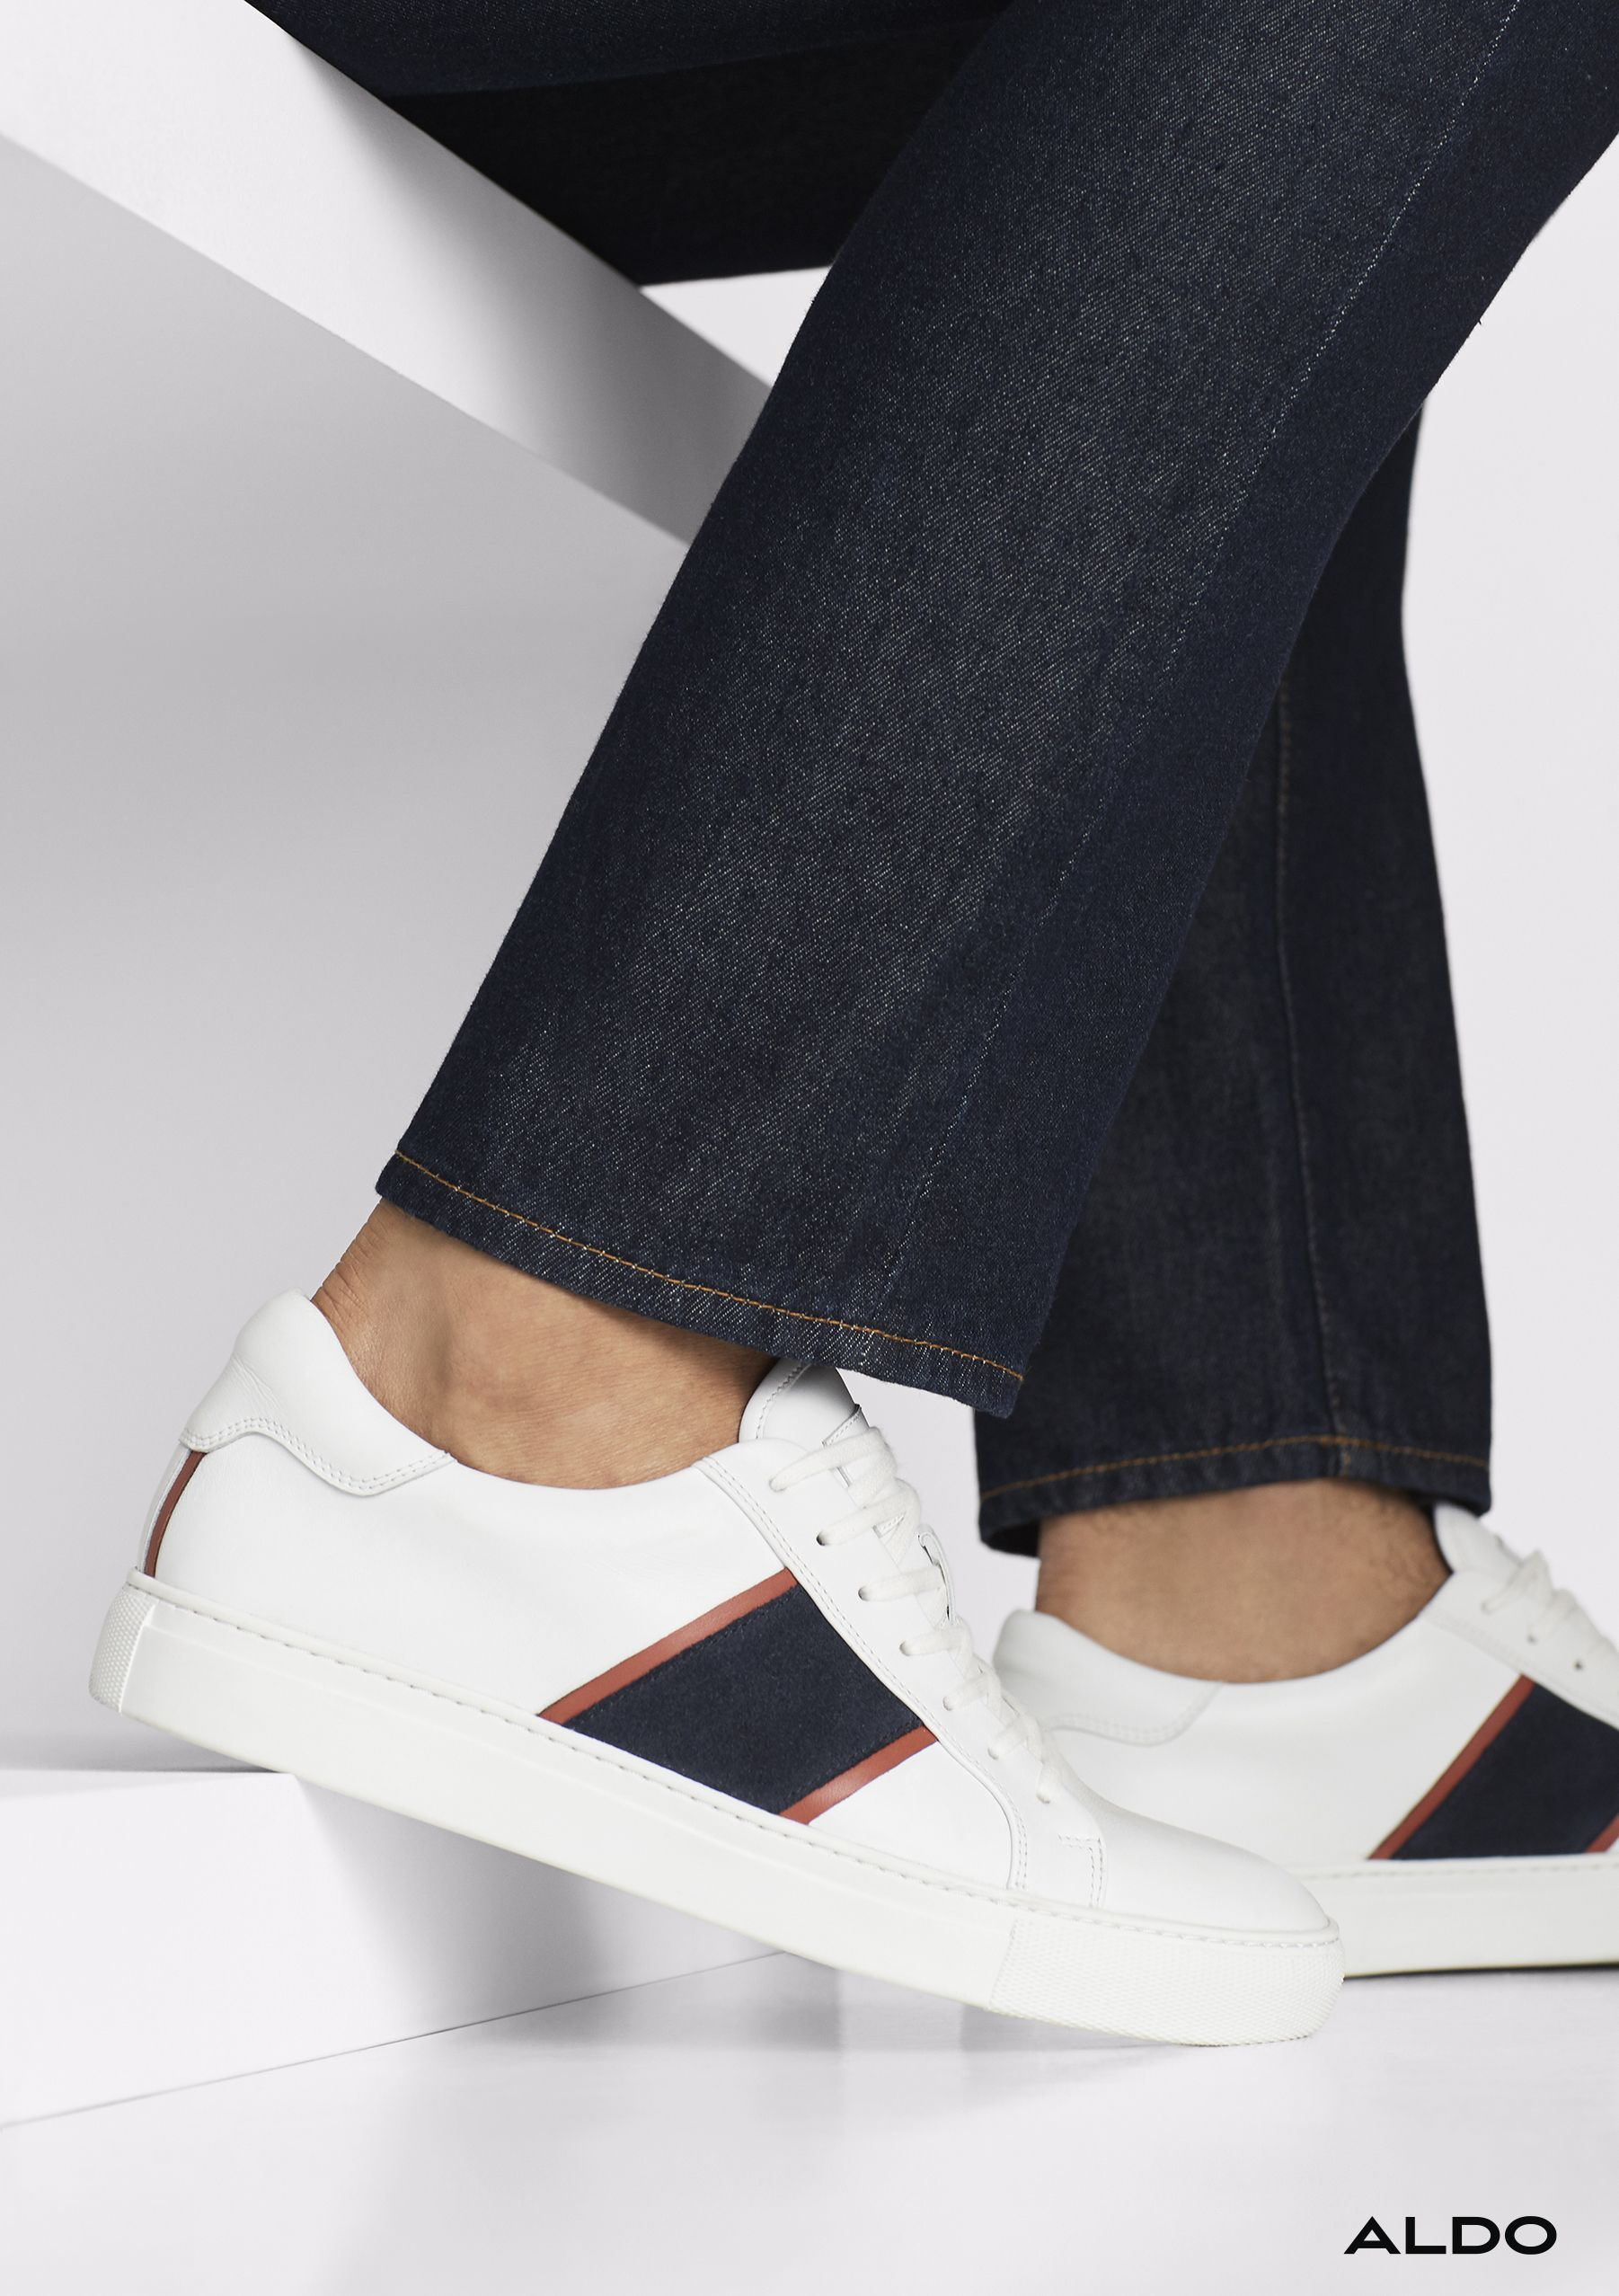 Pin on Cute Shoes For